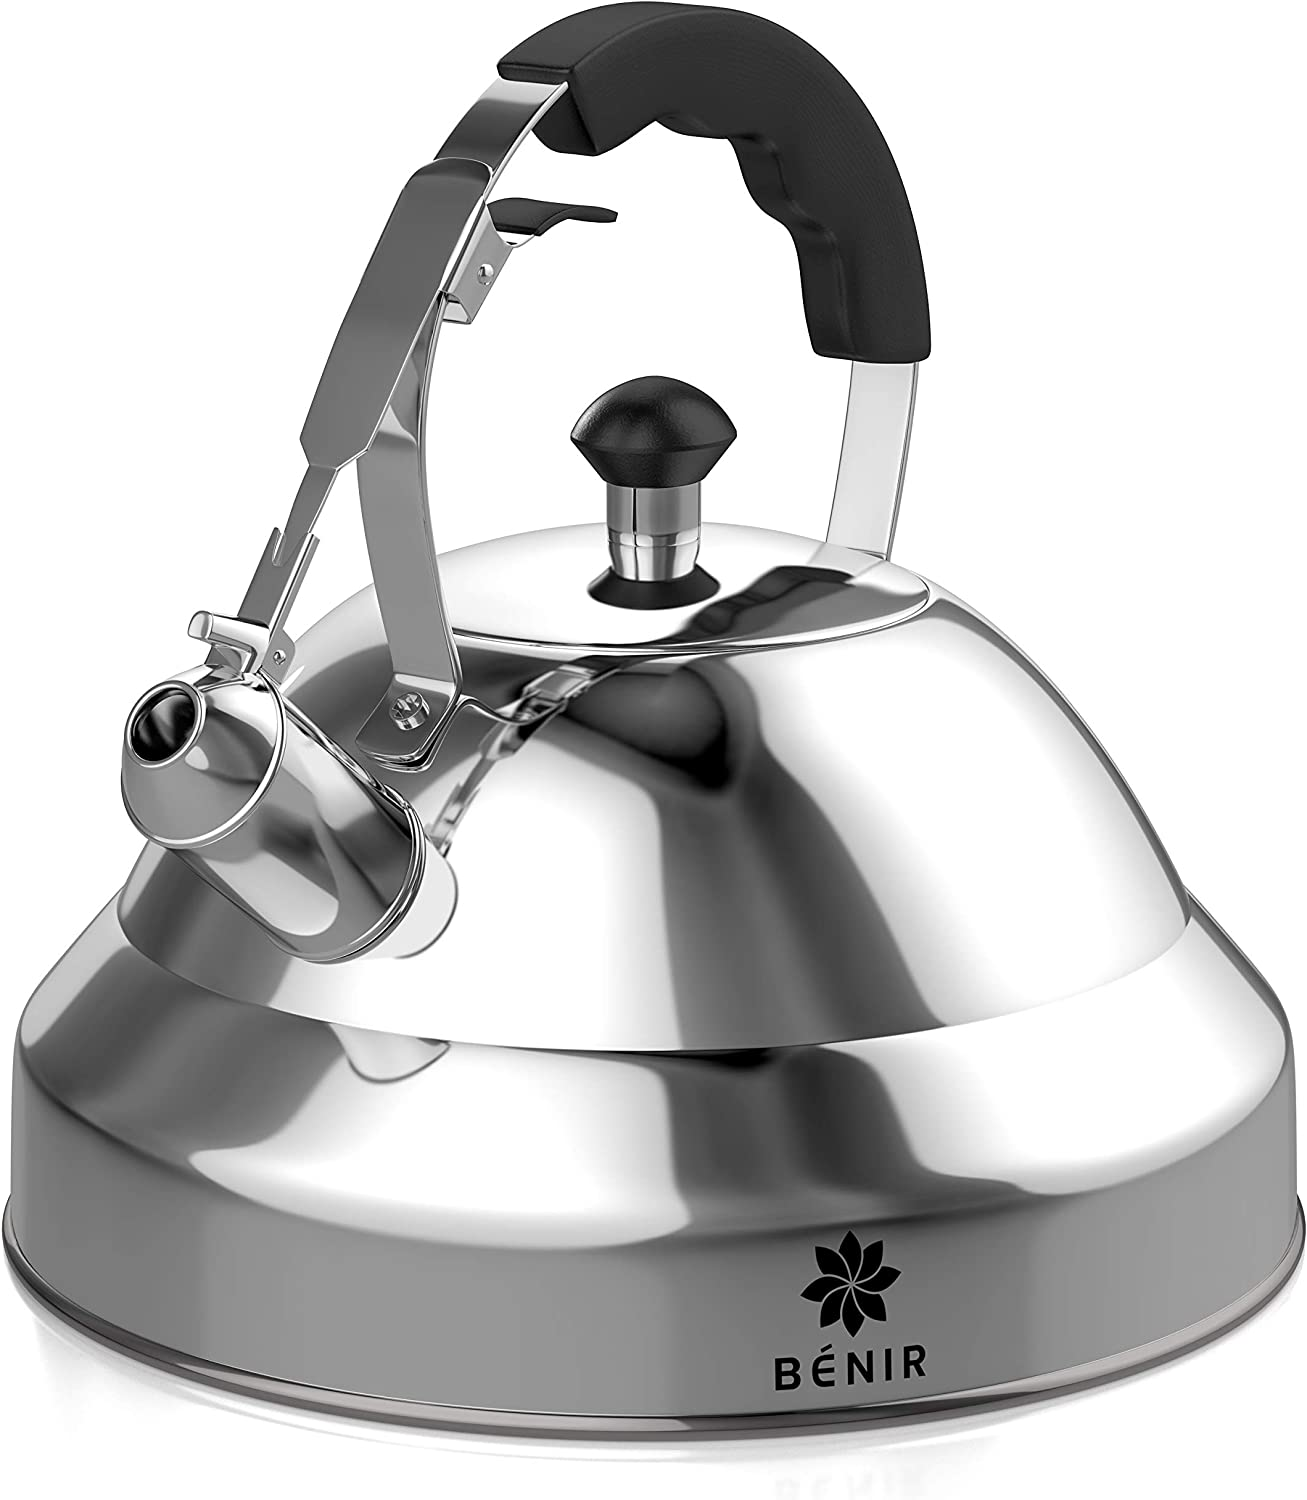 Benir Tea Kettle -2.75 Quart Stainless Steel Whistling Tea Pot for Stove Top